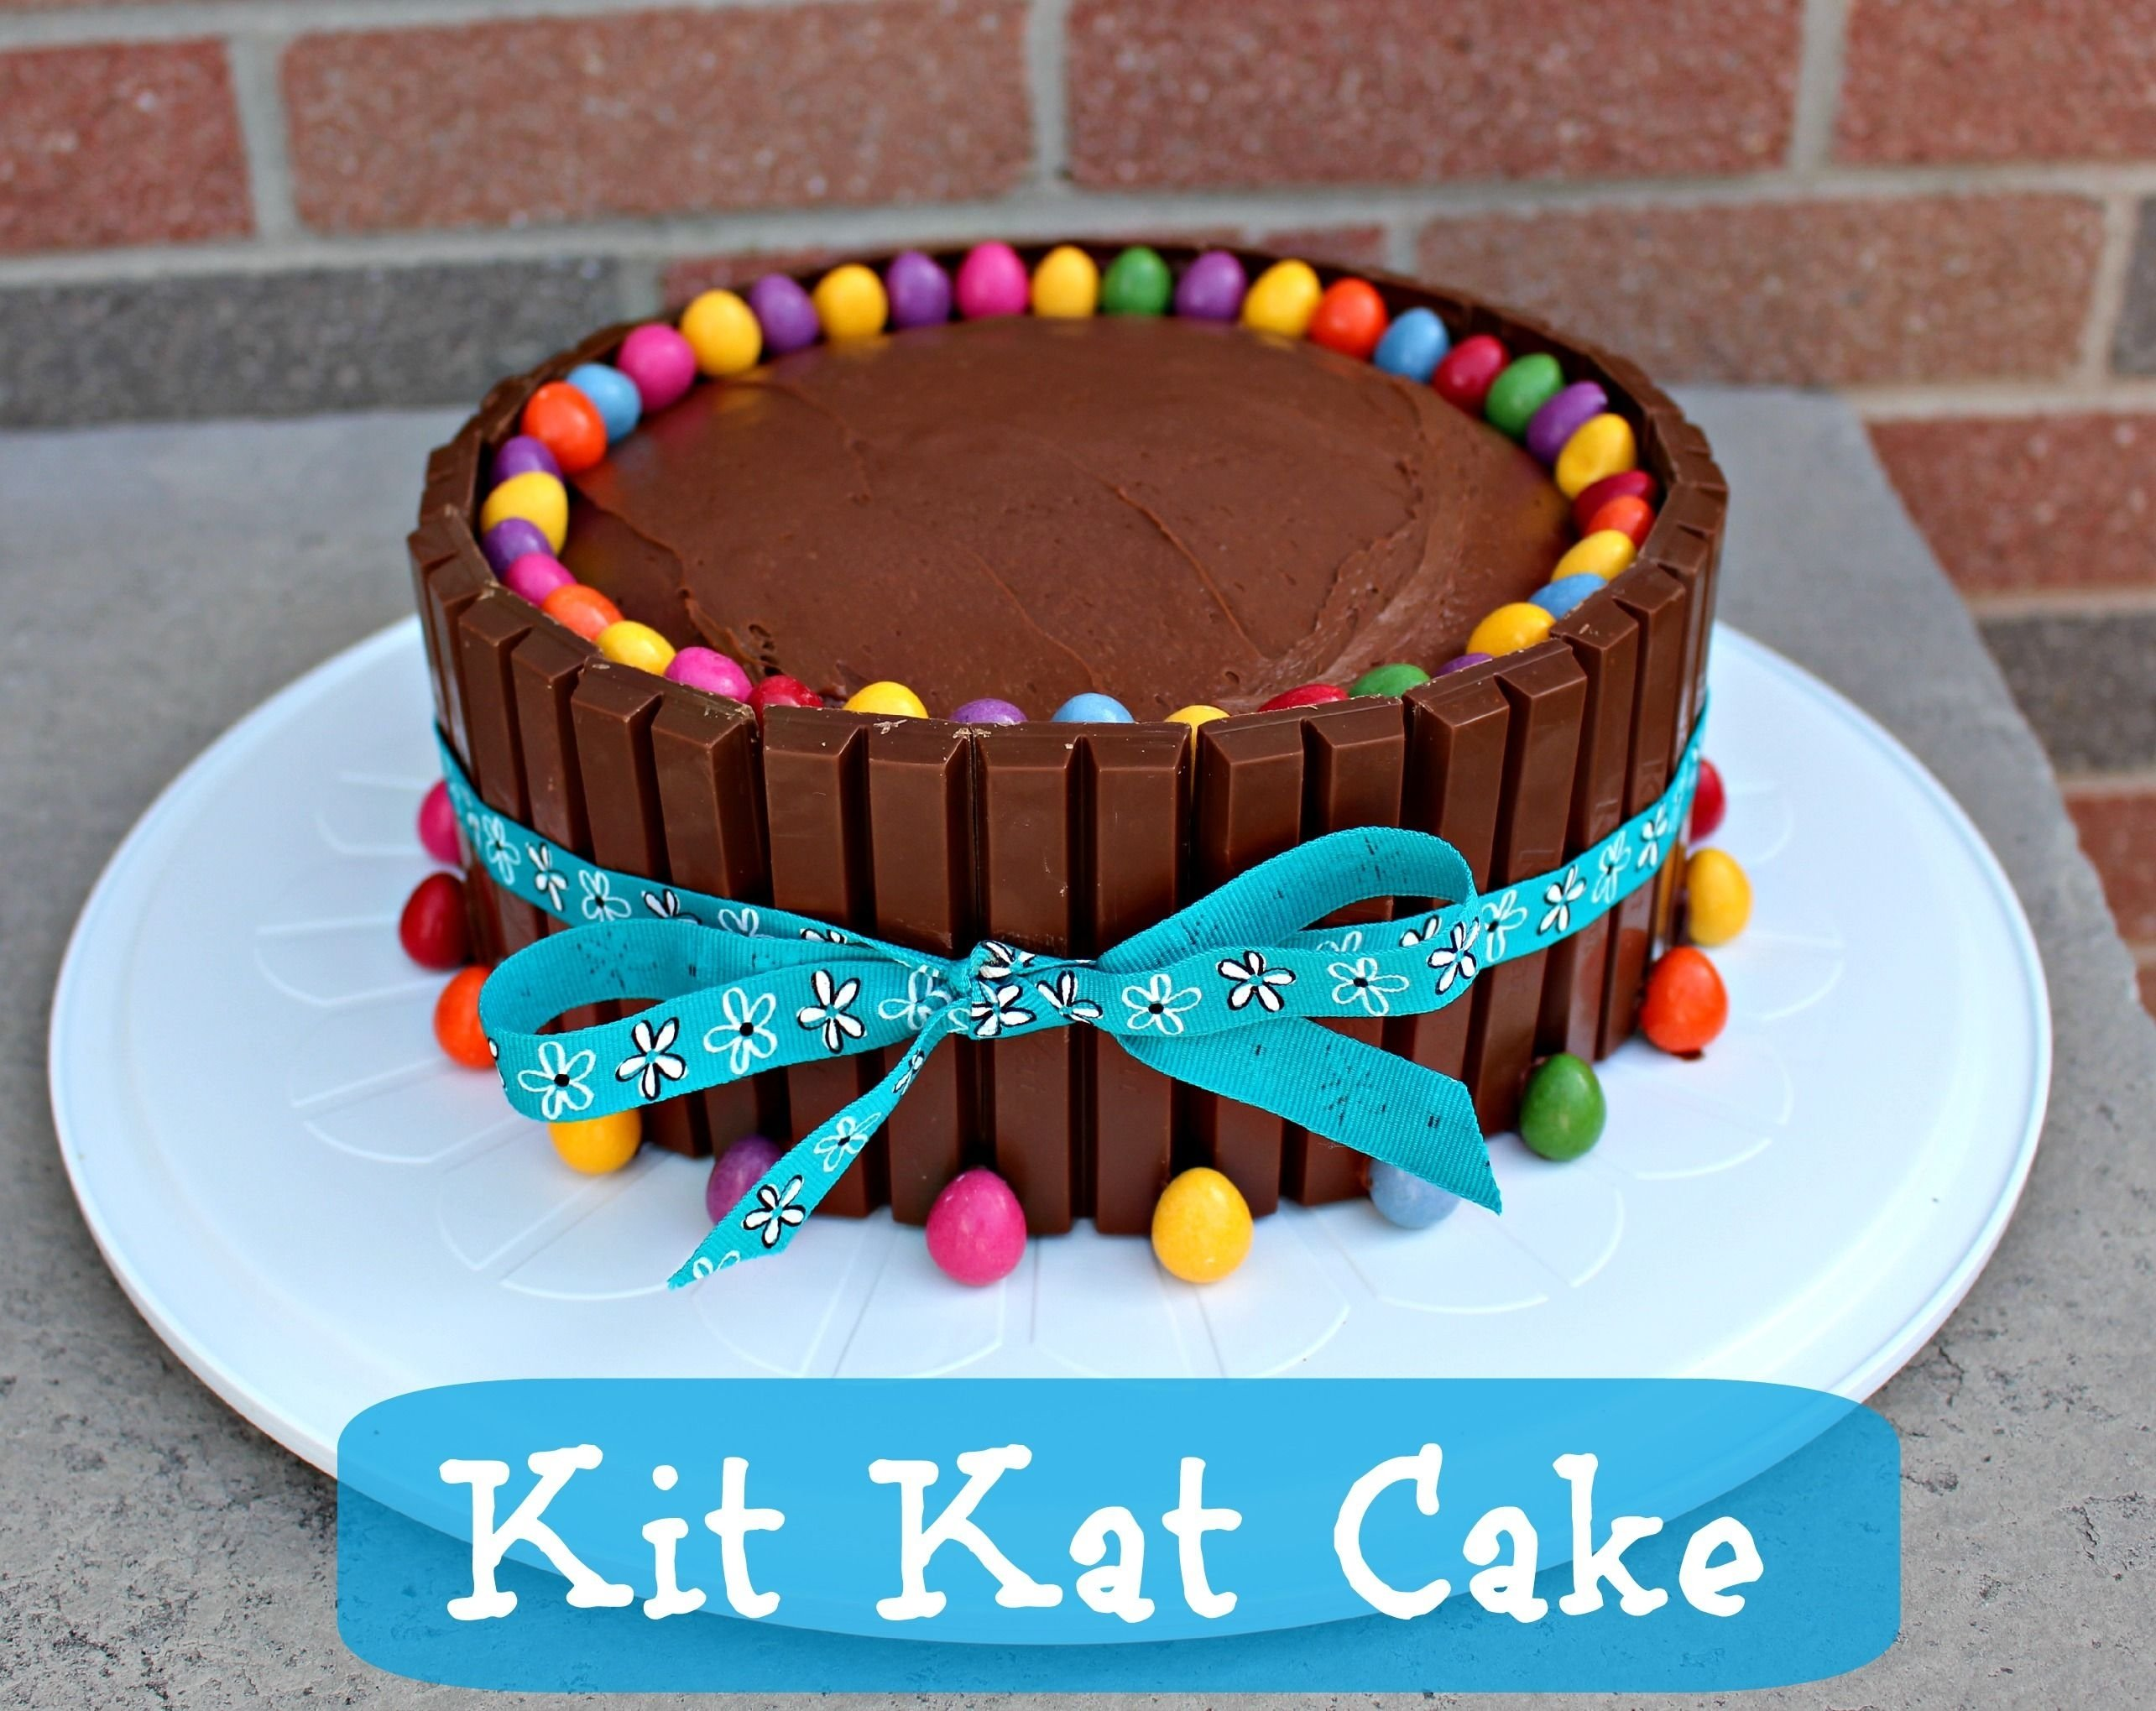 10 Elegant Easy Birthday Cake Decorating Ideas kit kat cake recipe cake birthday birthday cakes and teen 2020